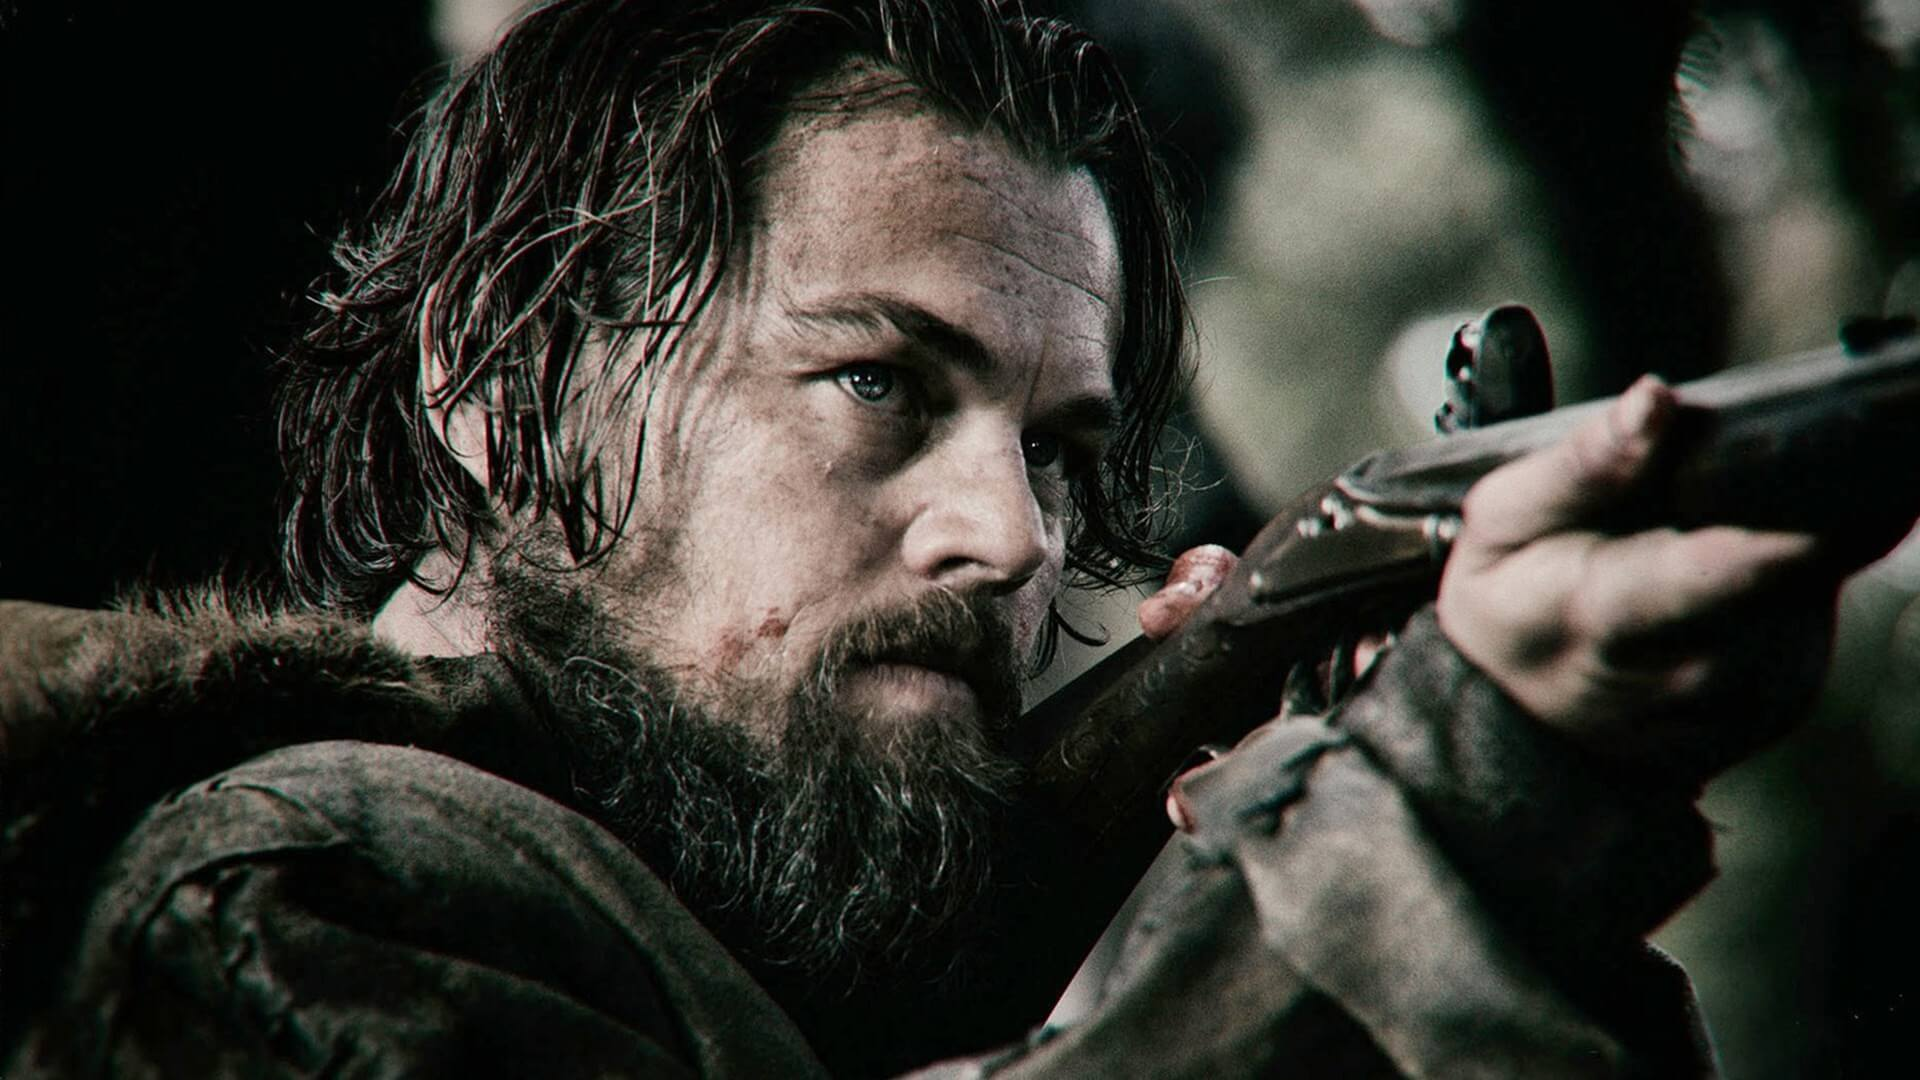 The Revenant Trailer Breakdown